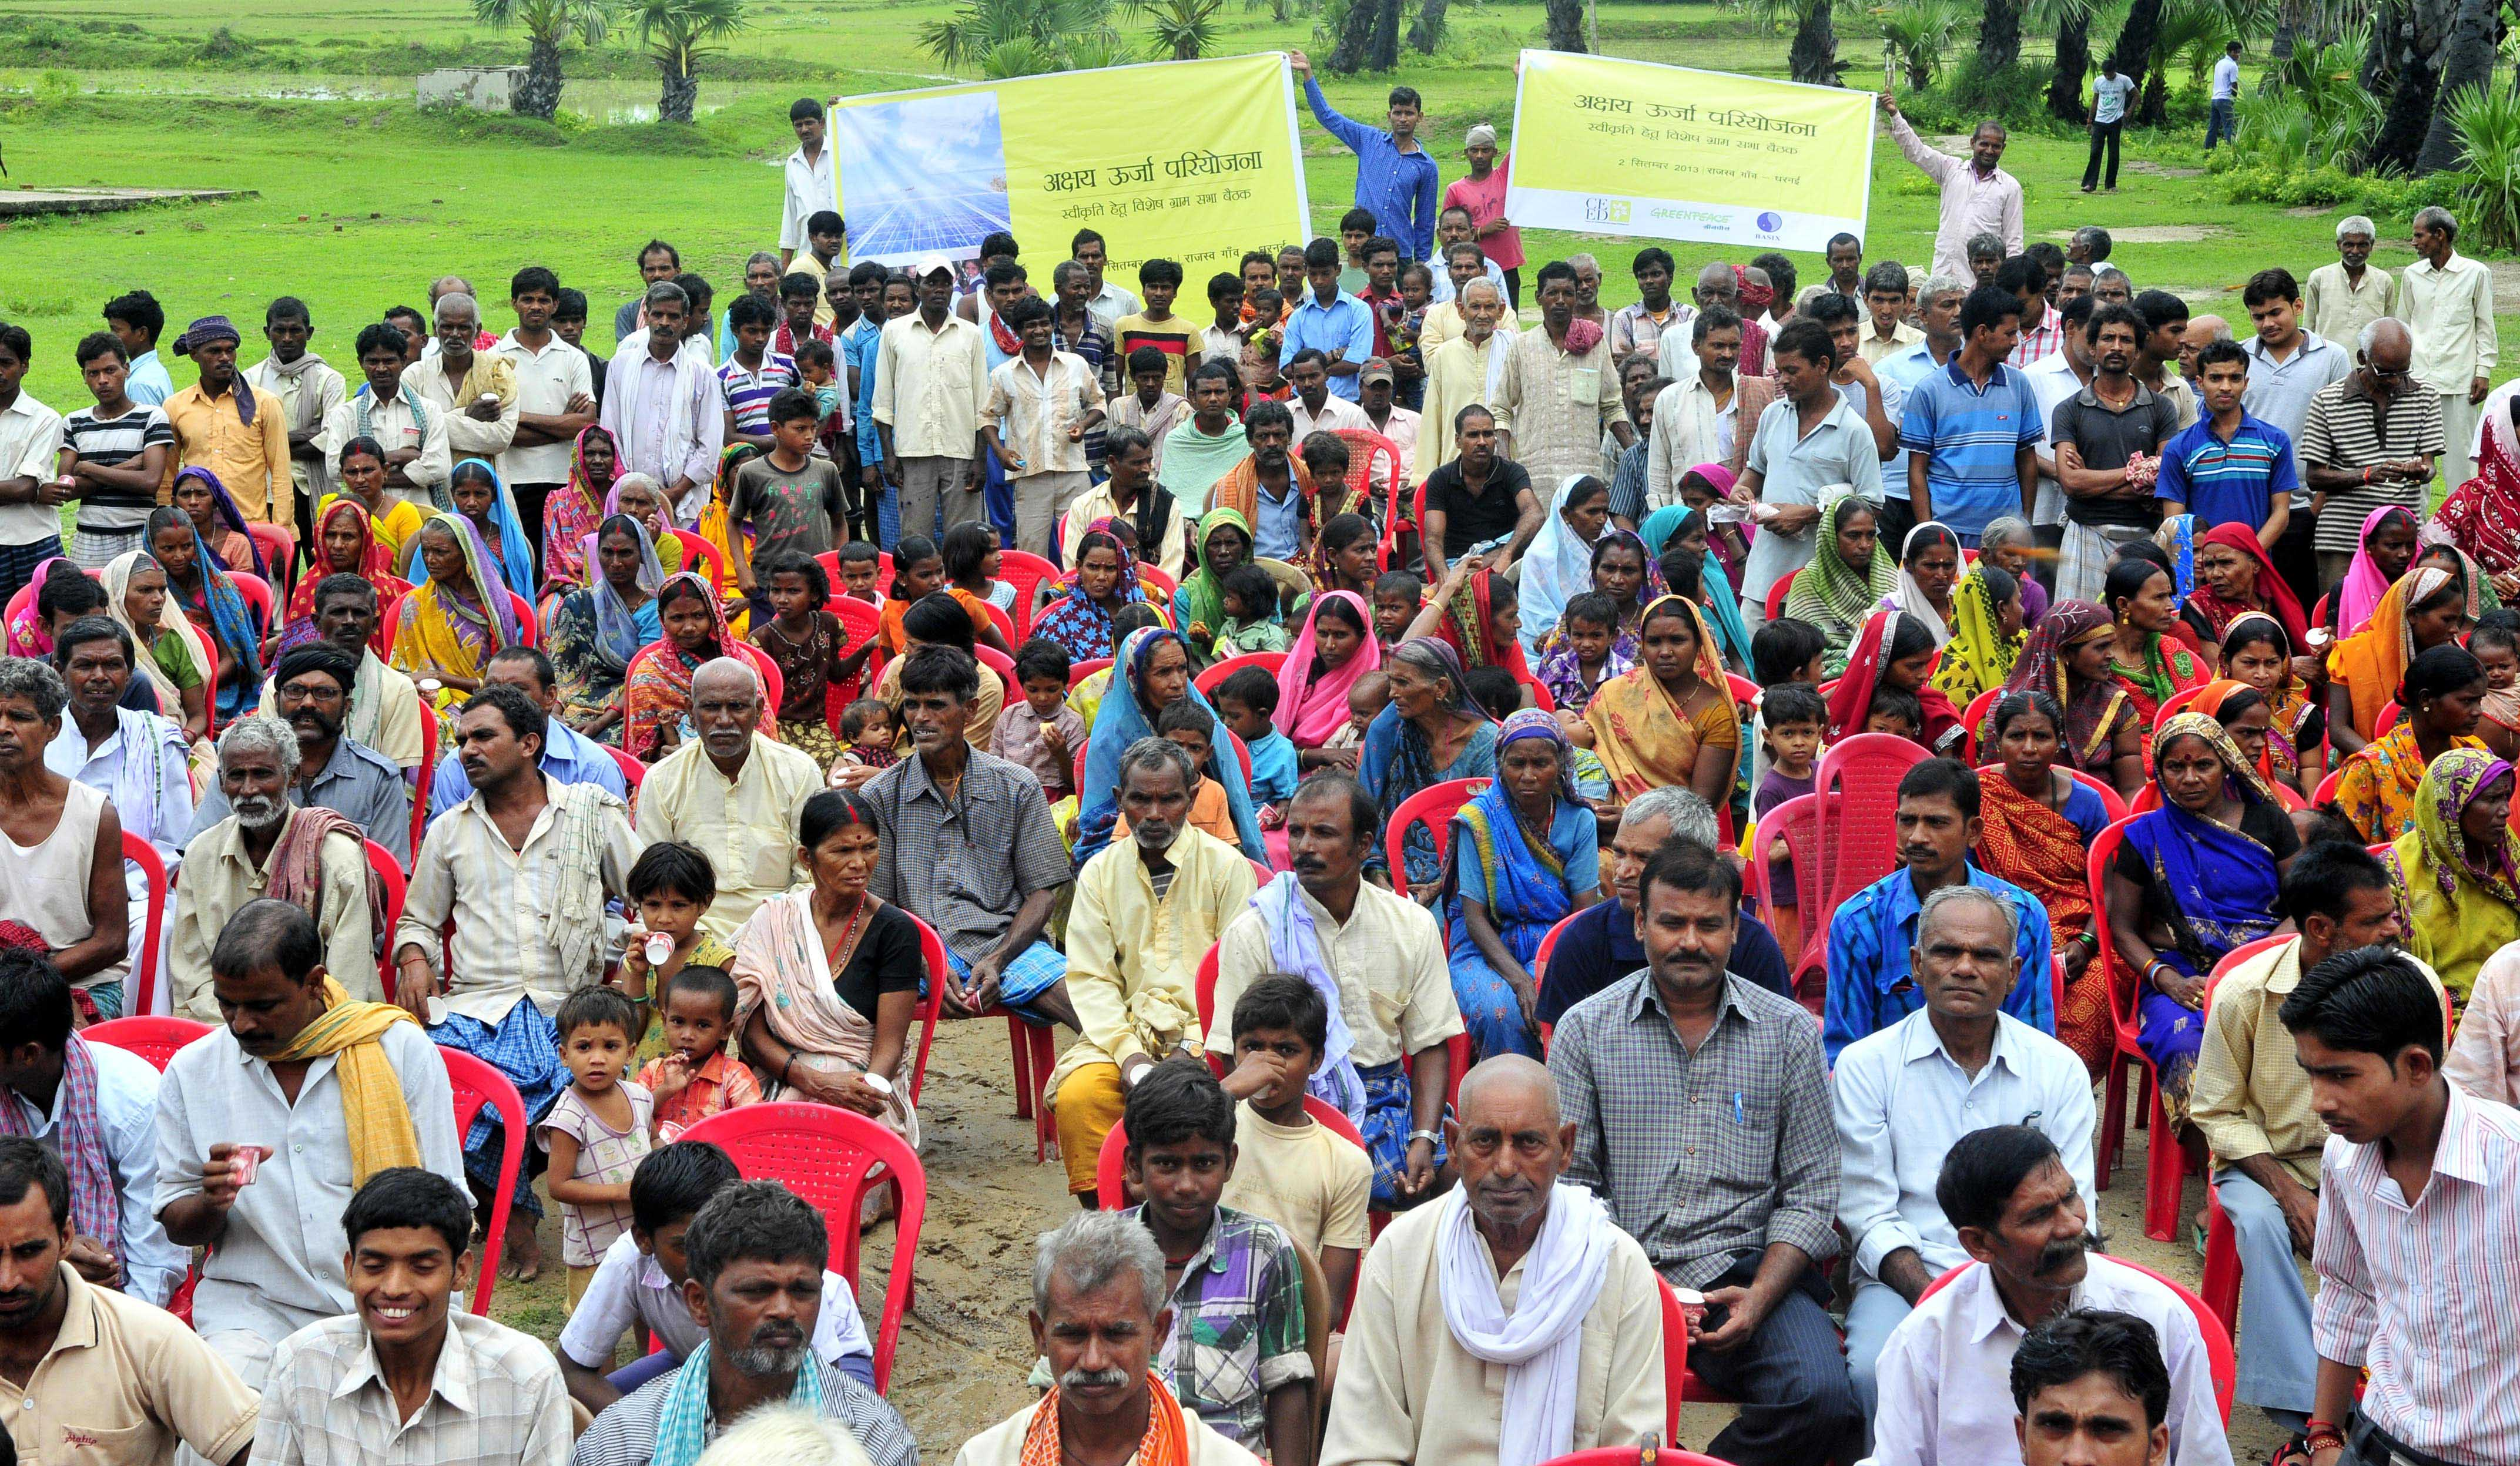 Villagers in Dharnai, Bihar at the Gram Sabha meet for the Bihar Rural Electrification Micro Grid Project give their 'go ahead' for the Rural Electrification Micro Grid Project.